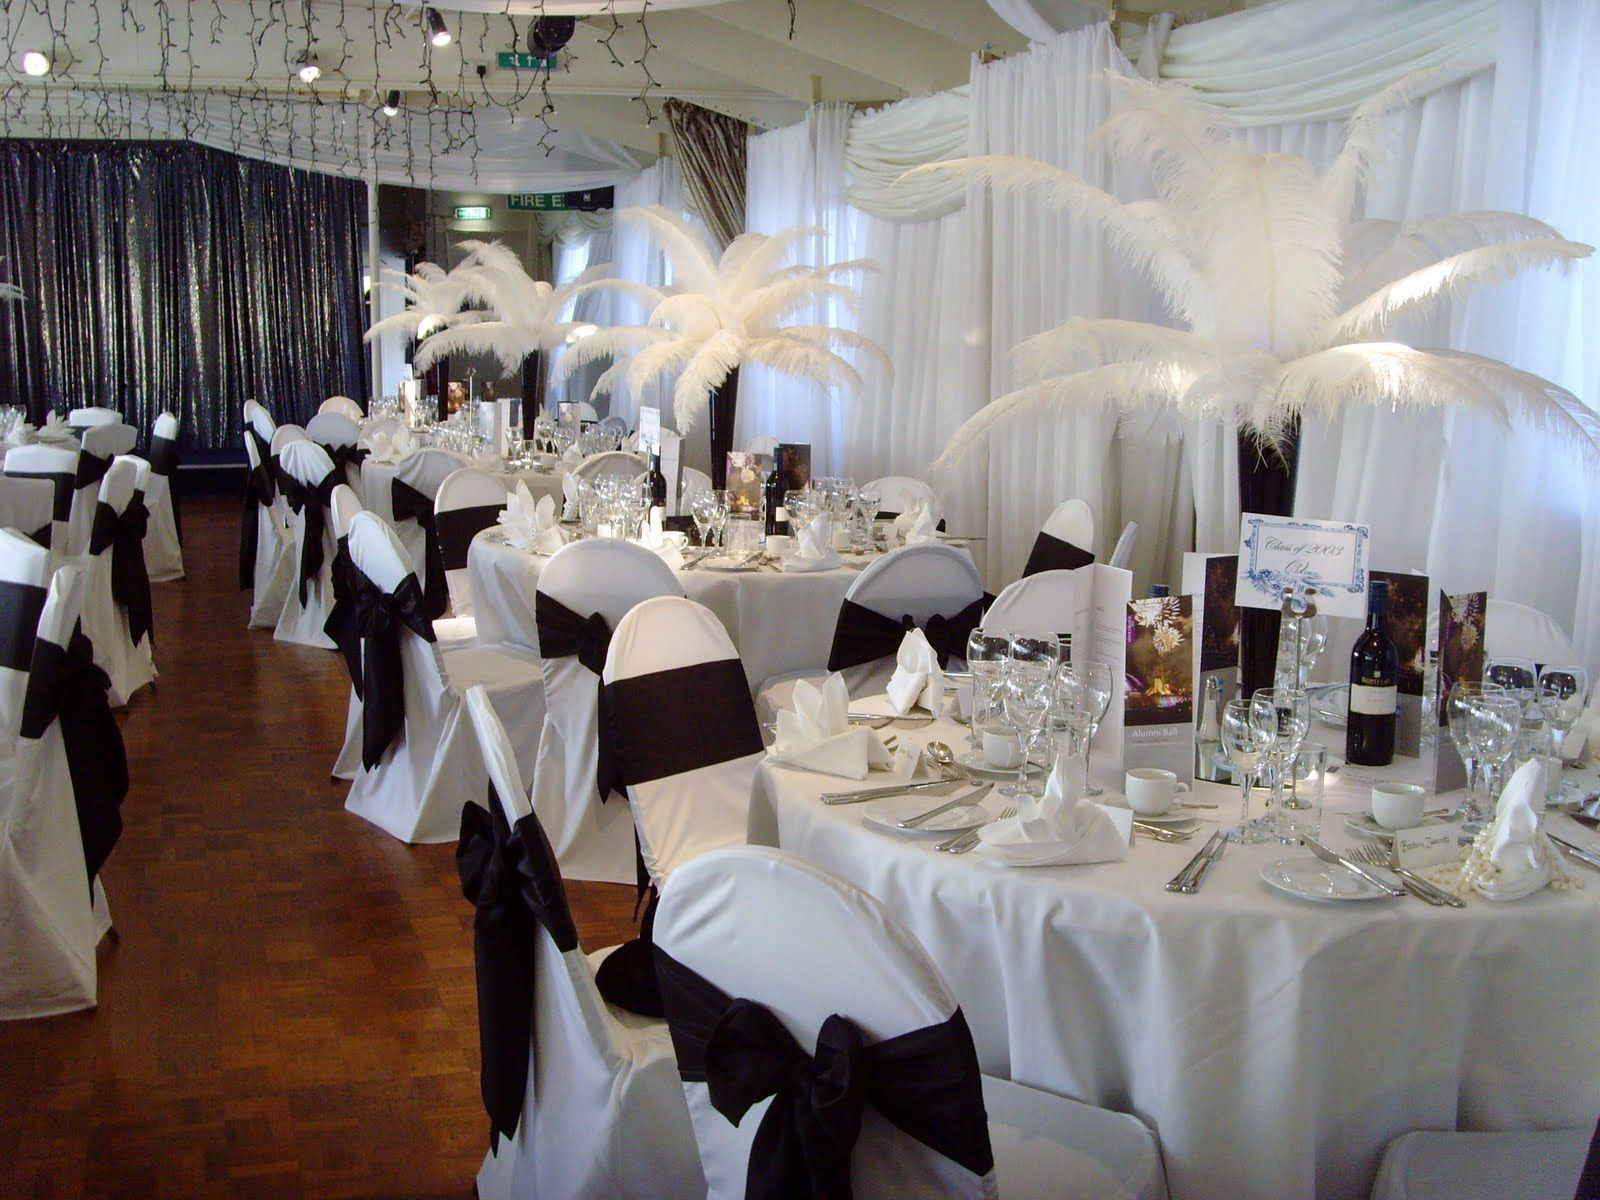 The Best Wedding Decorations Venues Guide